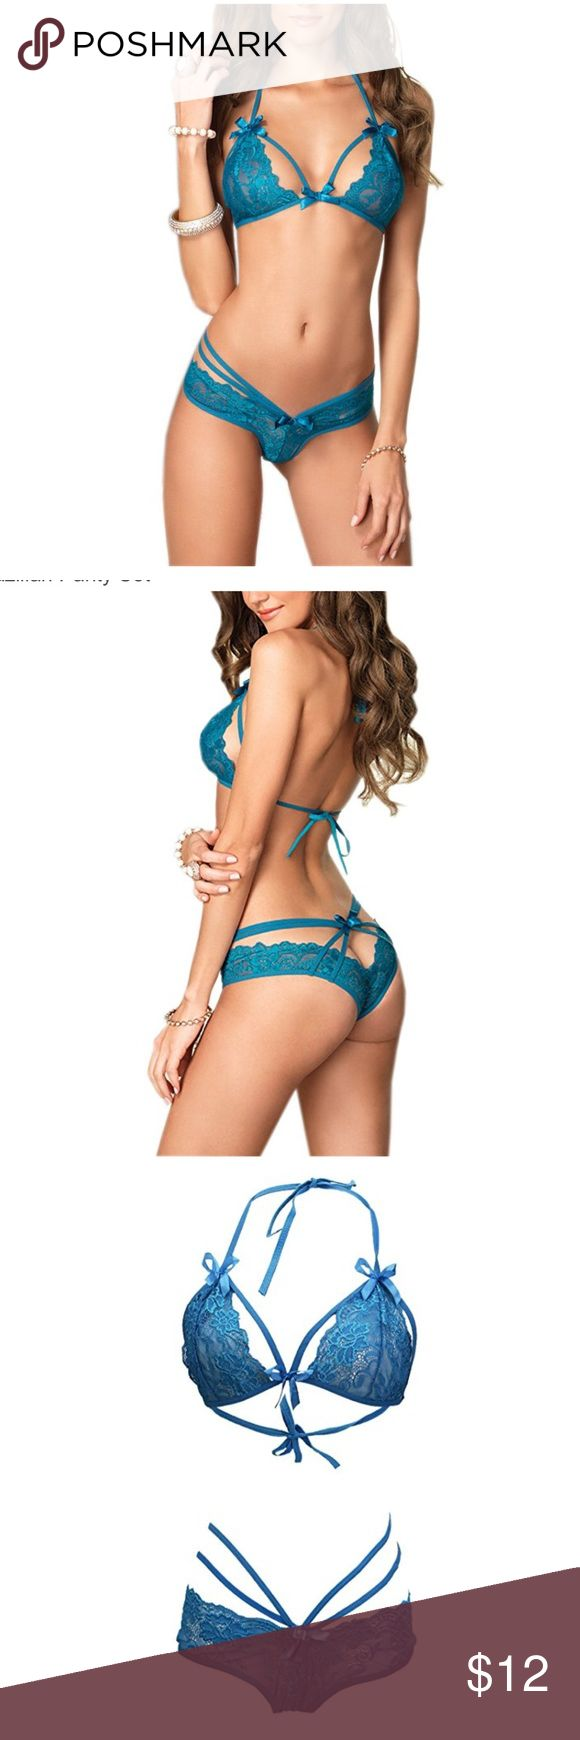 Blue lingerie bra and panty lace set Brand new ordered a medium and it was too big Intimates & Sleepwear